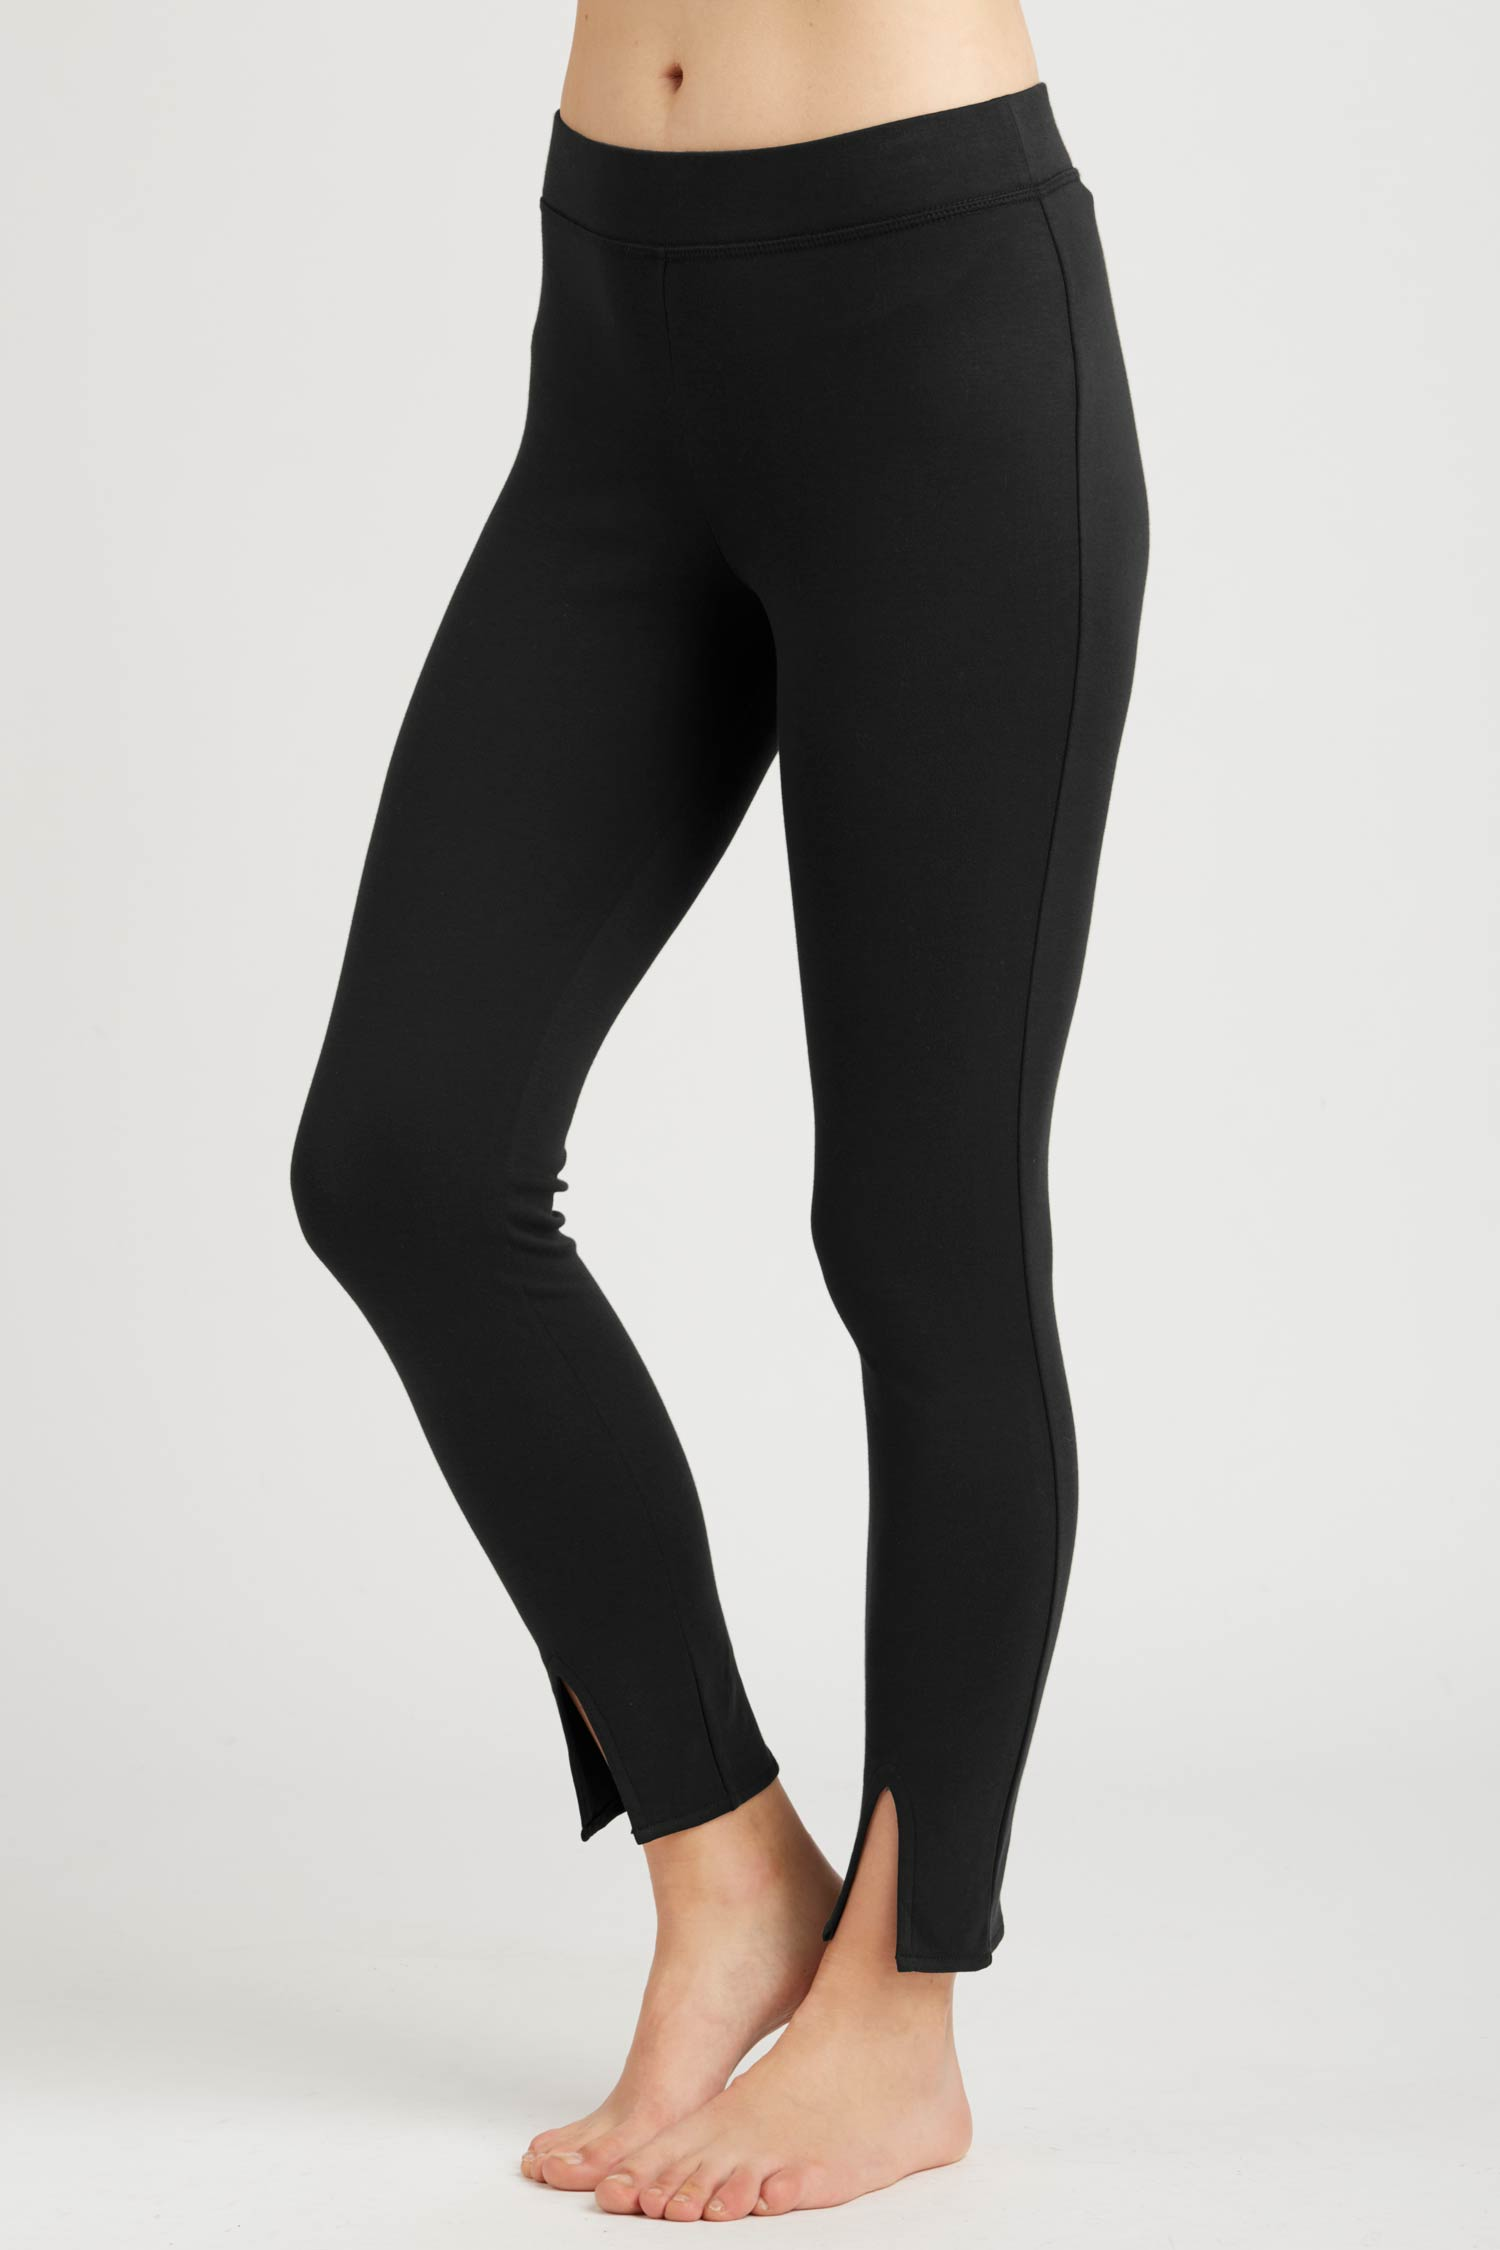 Womens Leggings Black | Ankle Slit Pant | Organic Cotton Clothing